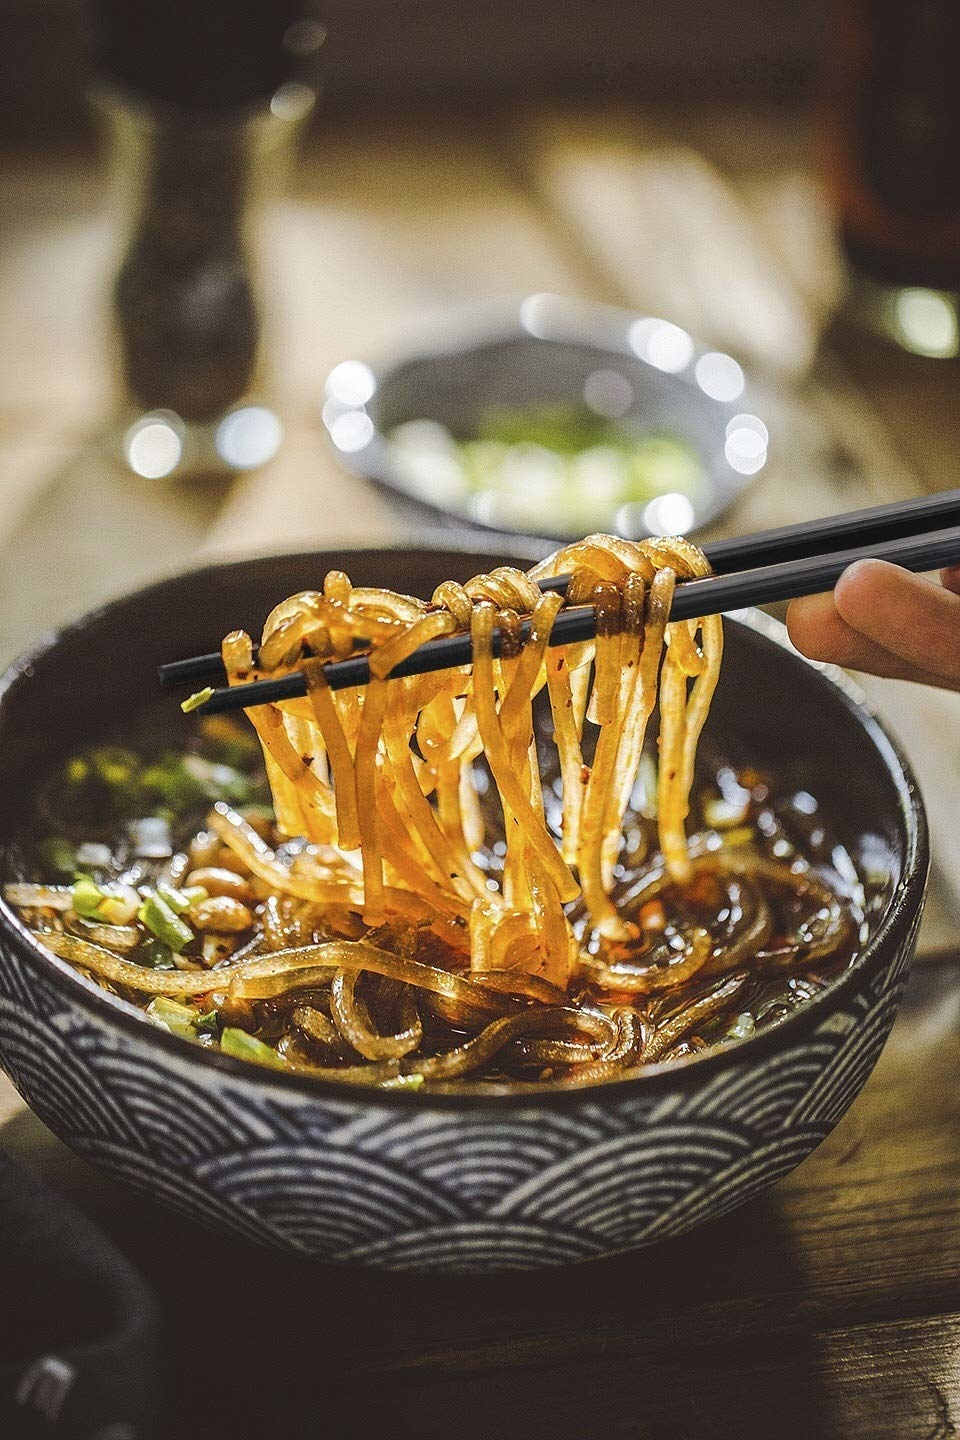 Glass noodles held up with chop sticks